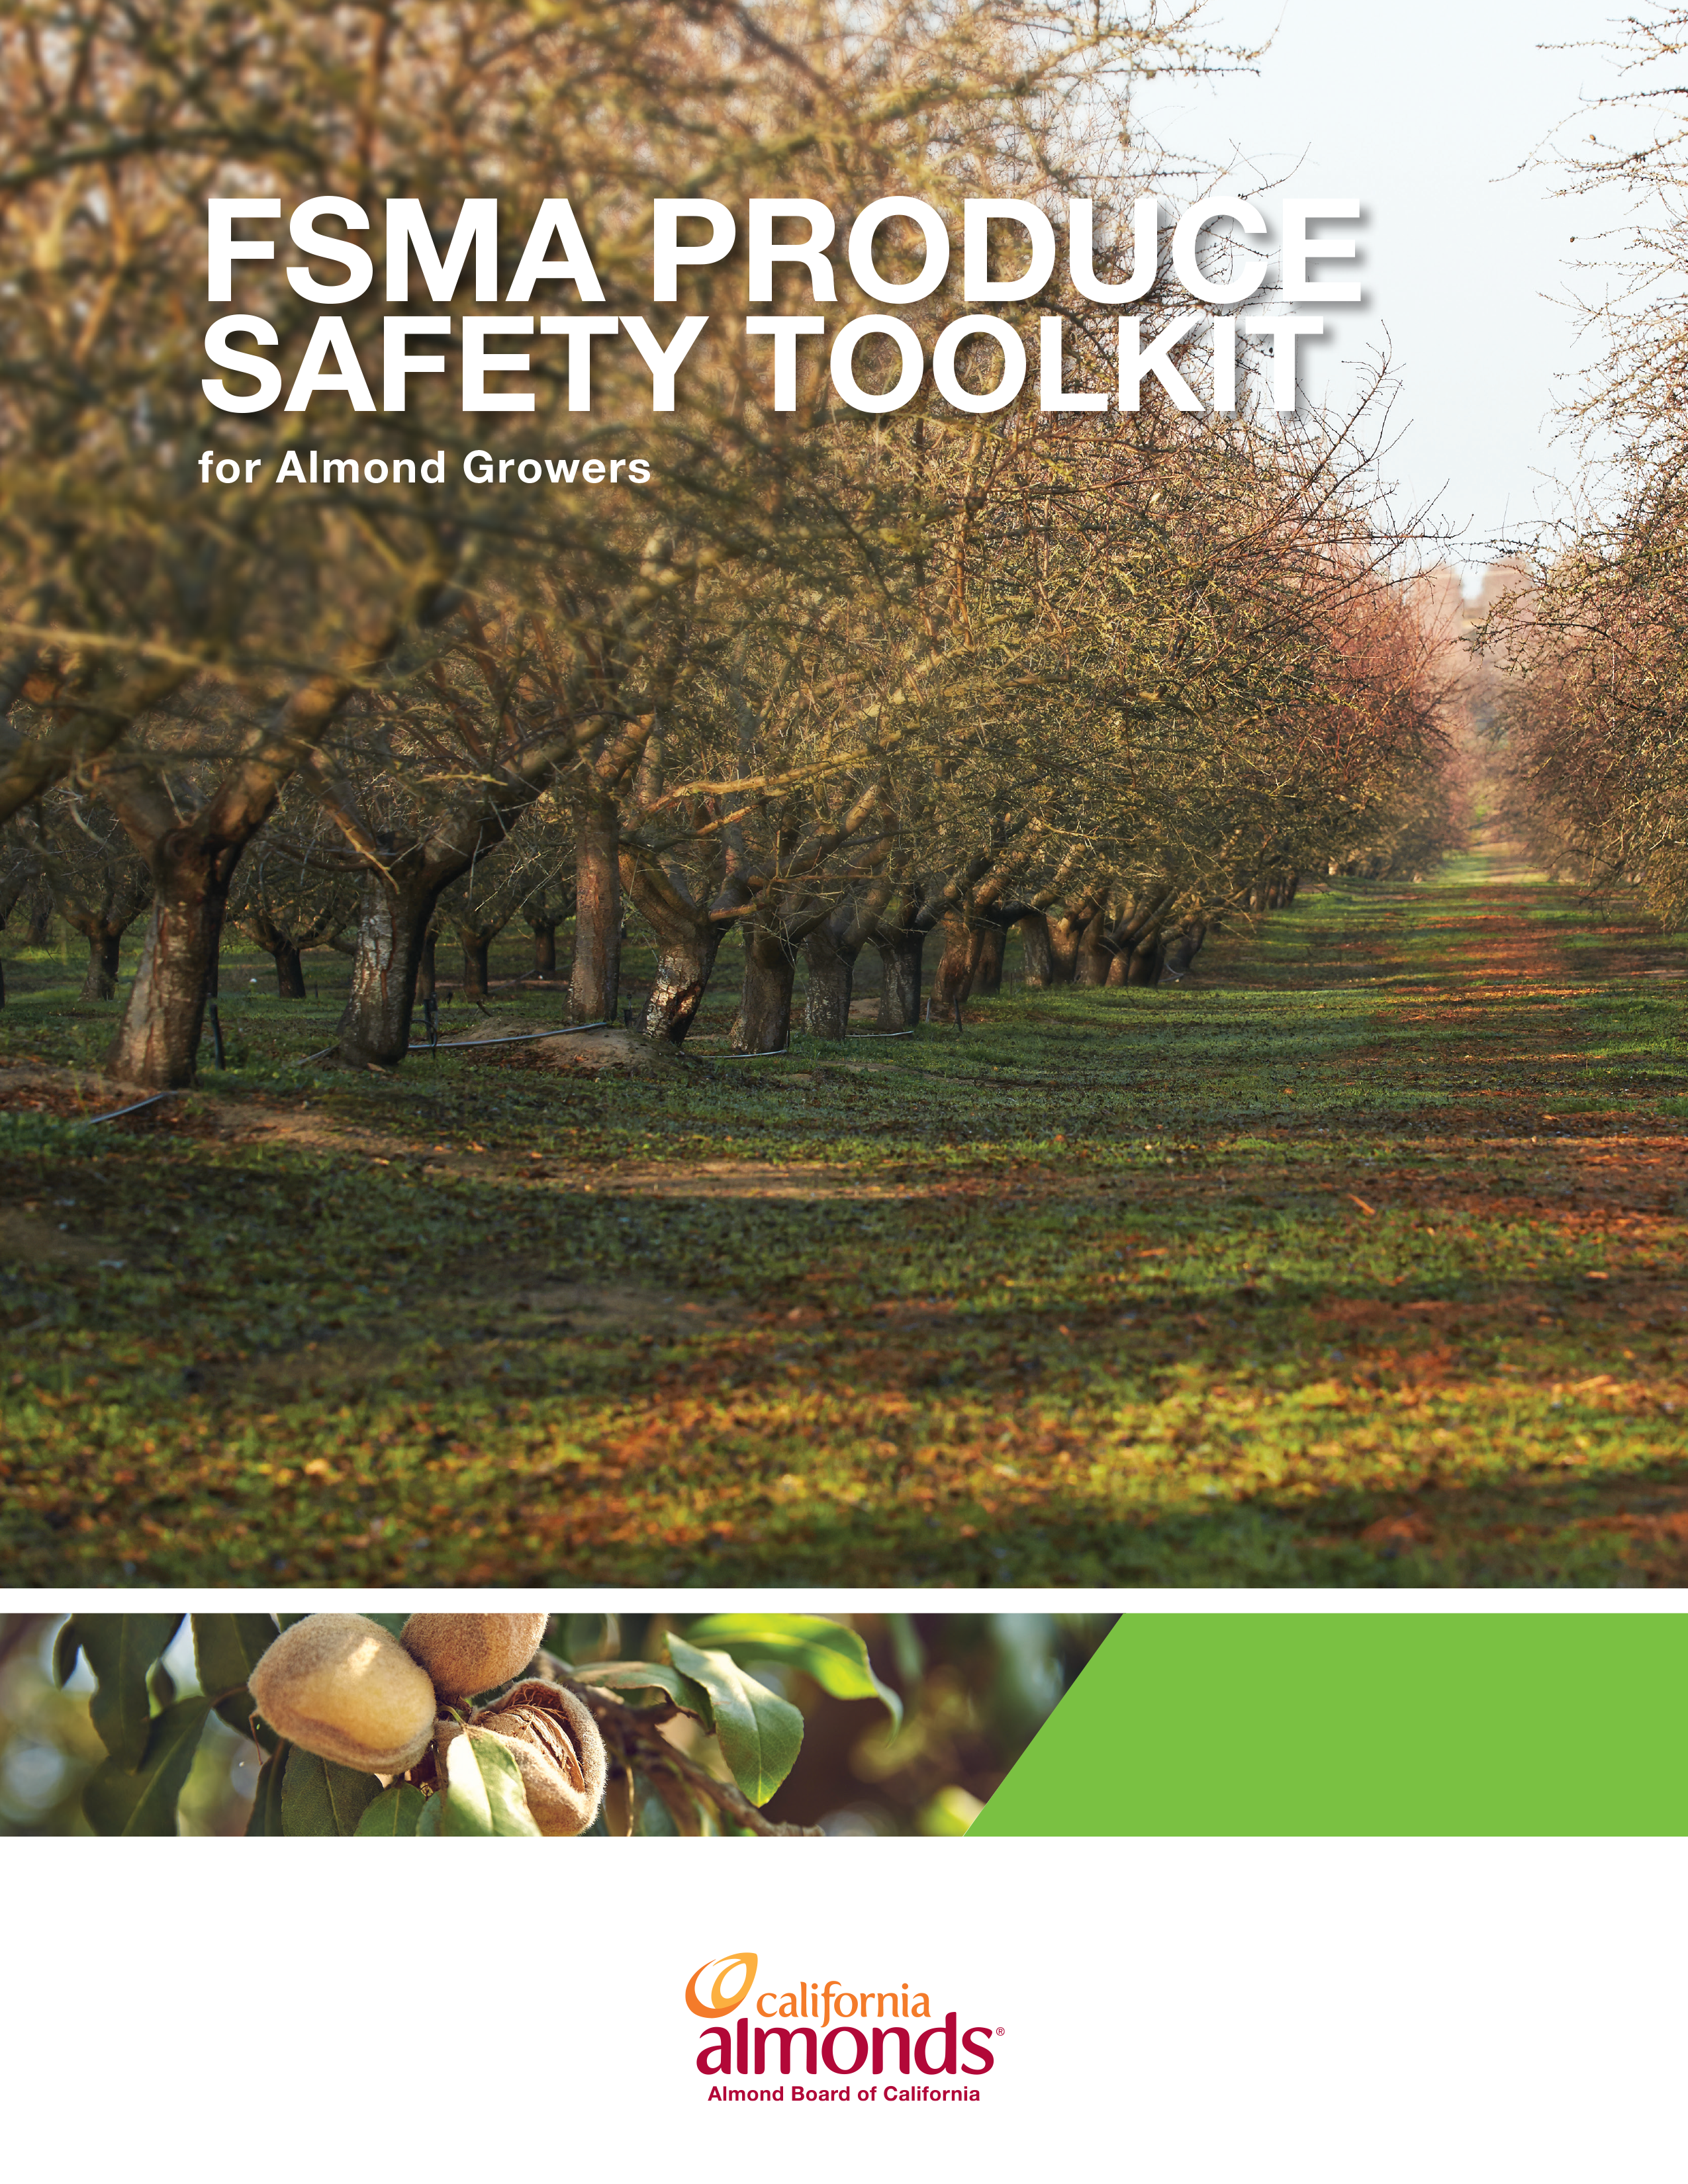 FSMA Produce Safety Toolkit